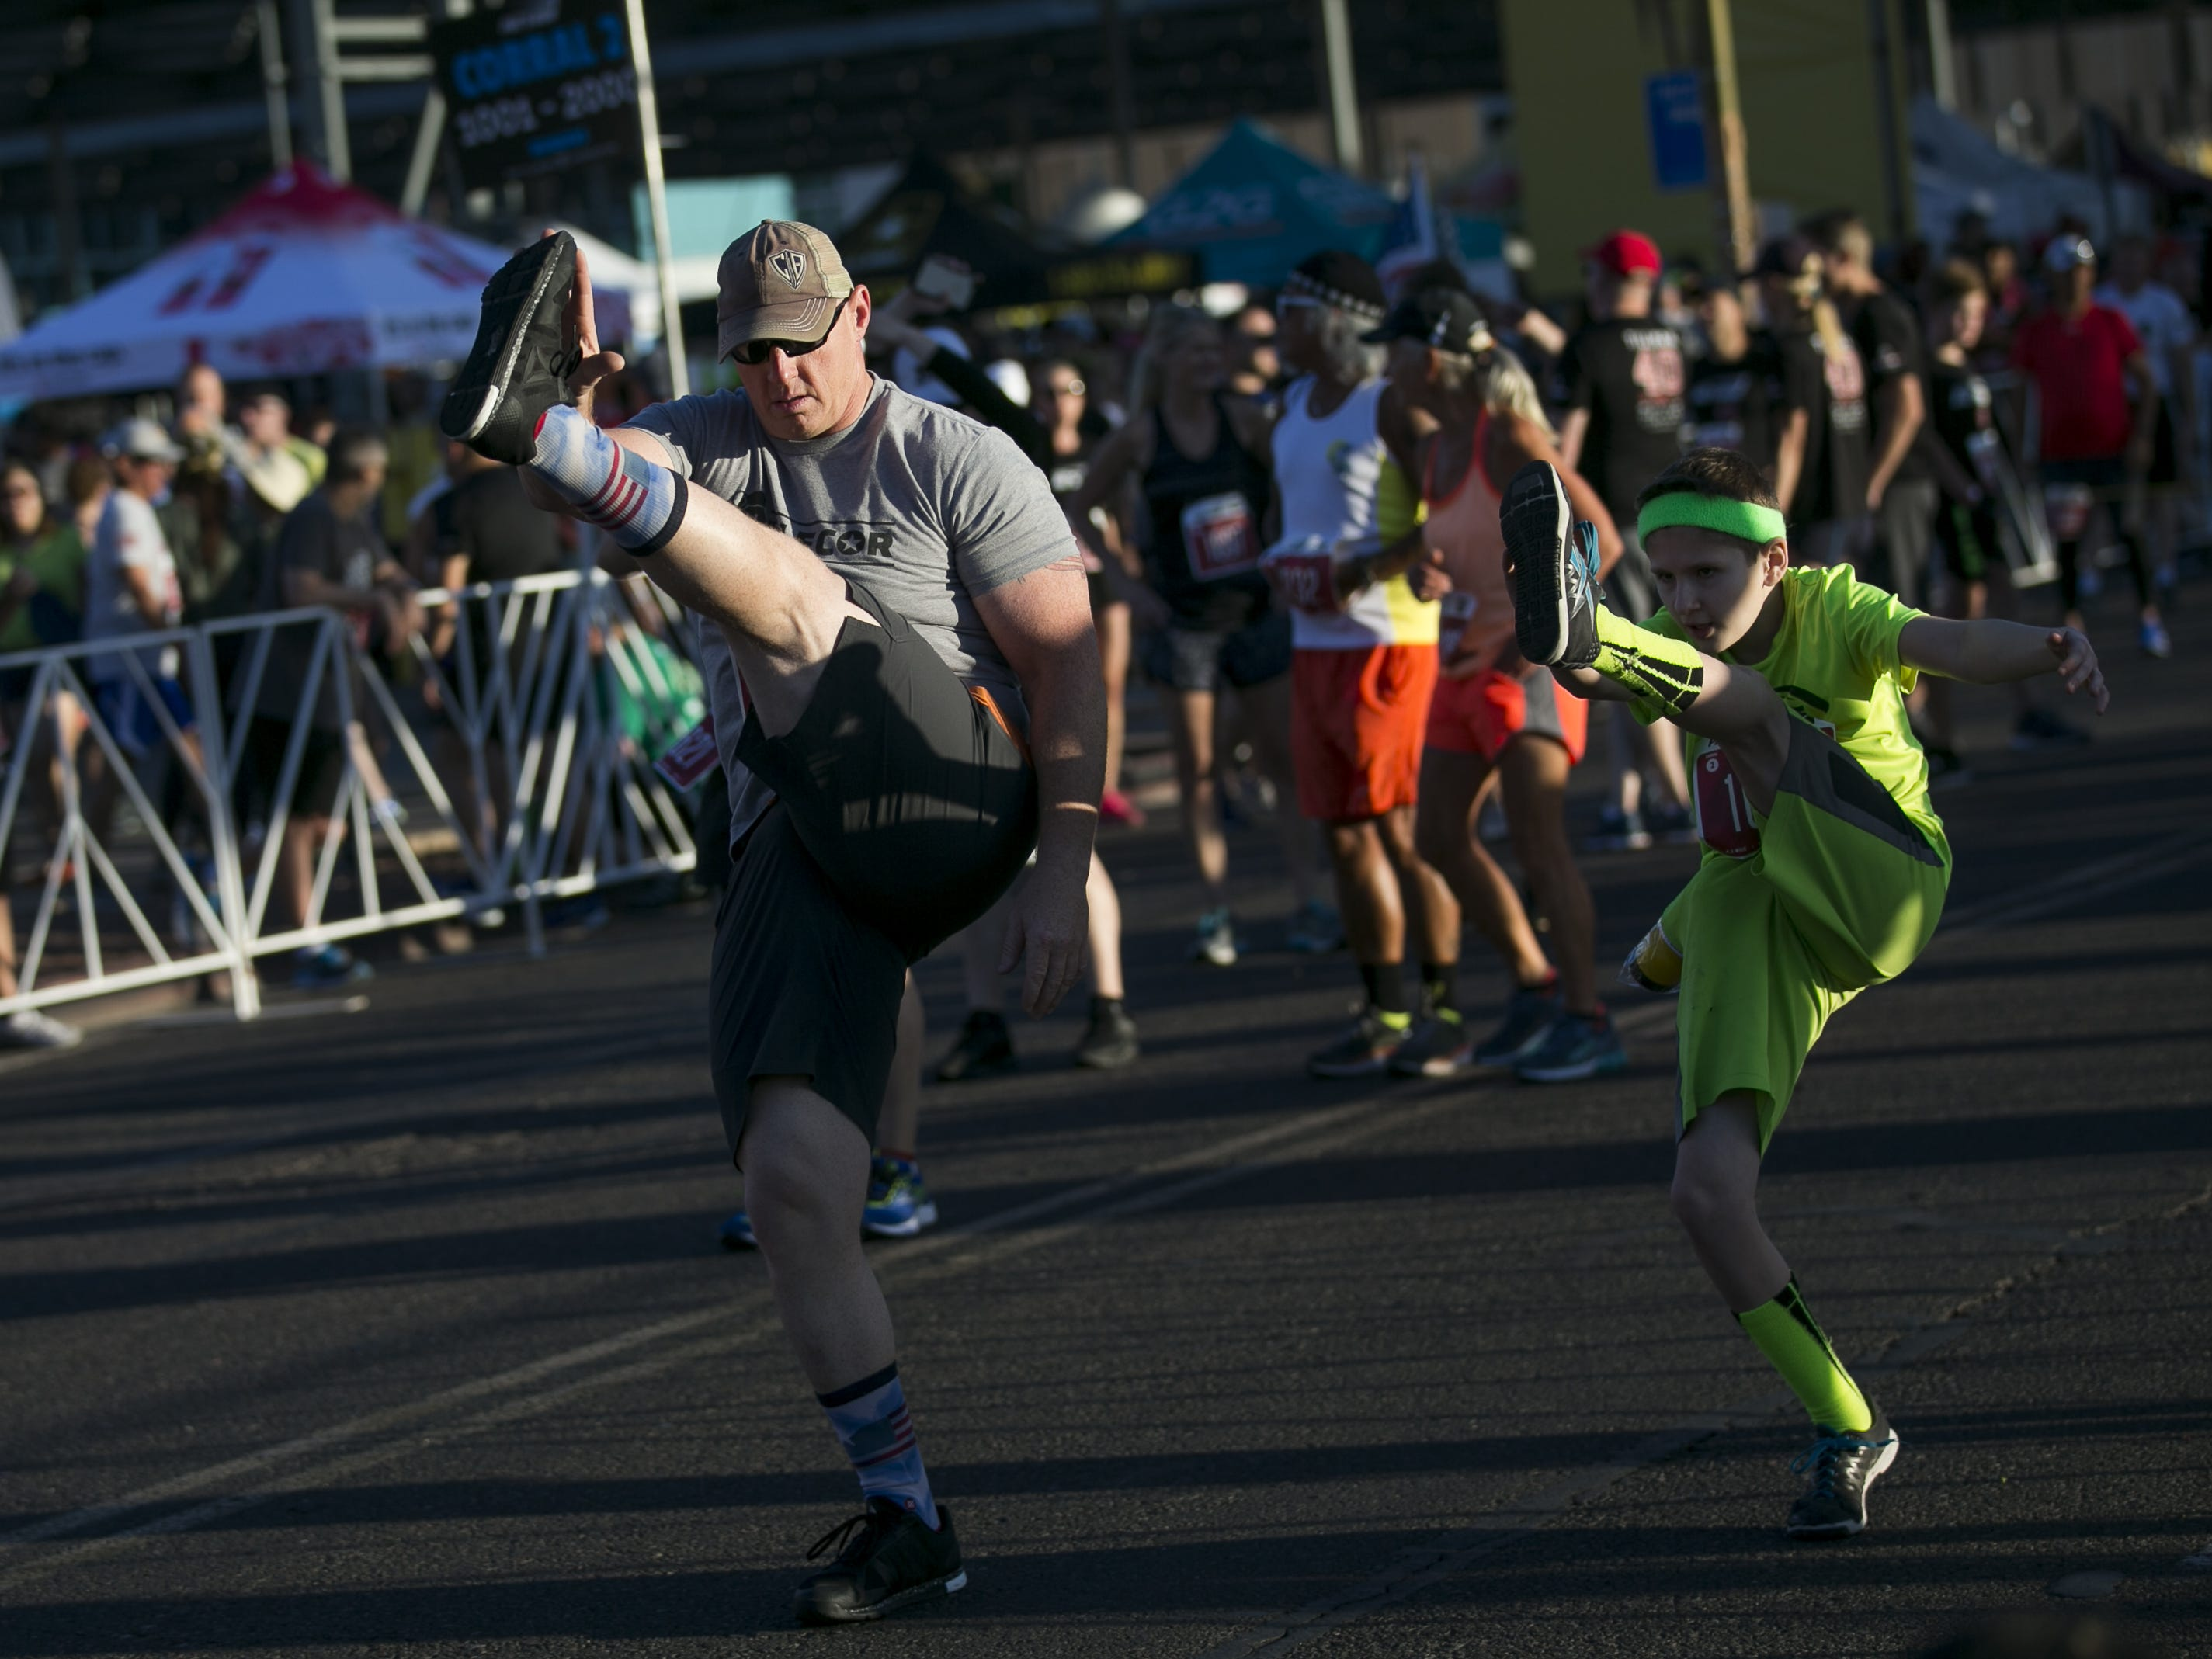 Runners stretch before participating in Pat's Run in Tempe on April 27, 2019.